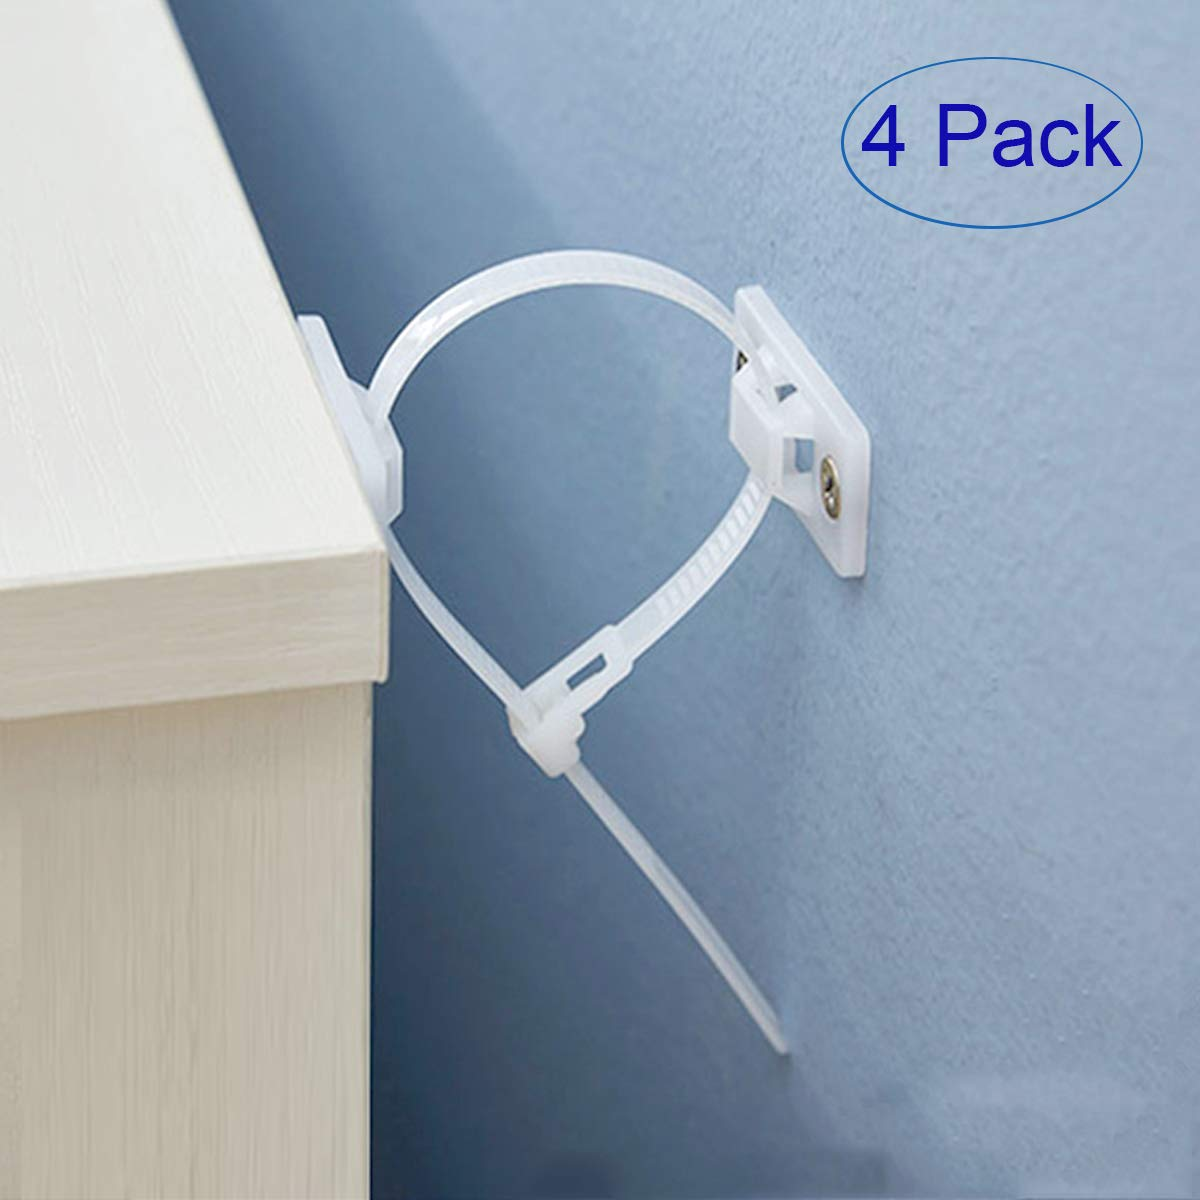 Anti-Tip Furniture Anchor Straps(4 Pack),Anti-Tilt Furniture Anchors Kit,Child Anchors for Dresser and Bookshelf,Adjustable Child Secure Straps for Bookshelf, Cabinet, Dresser,Furniture.(White)